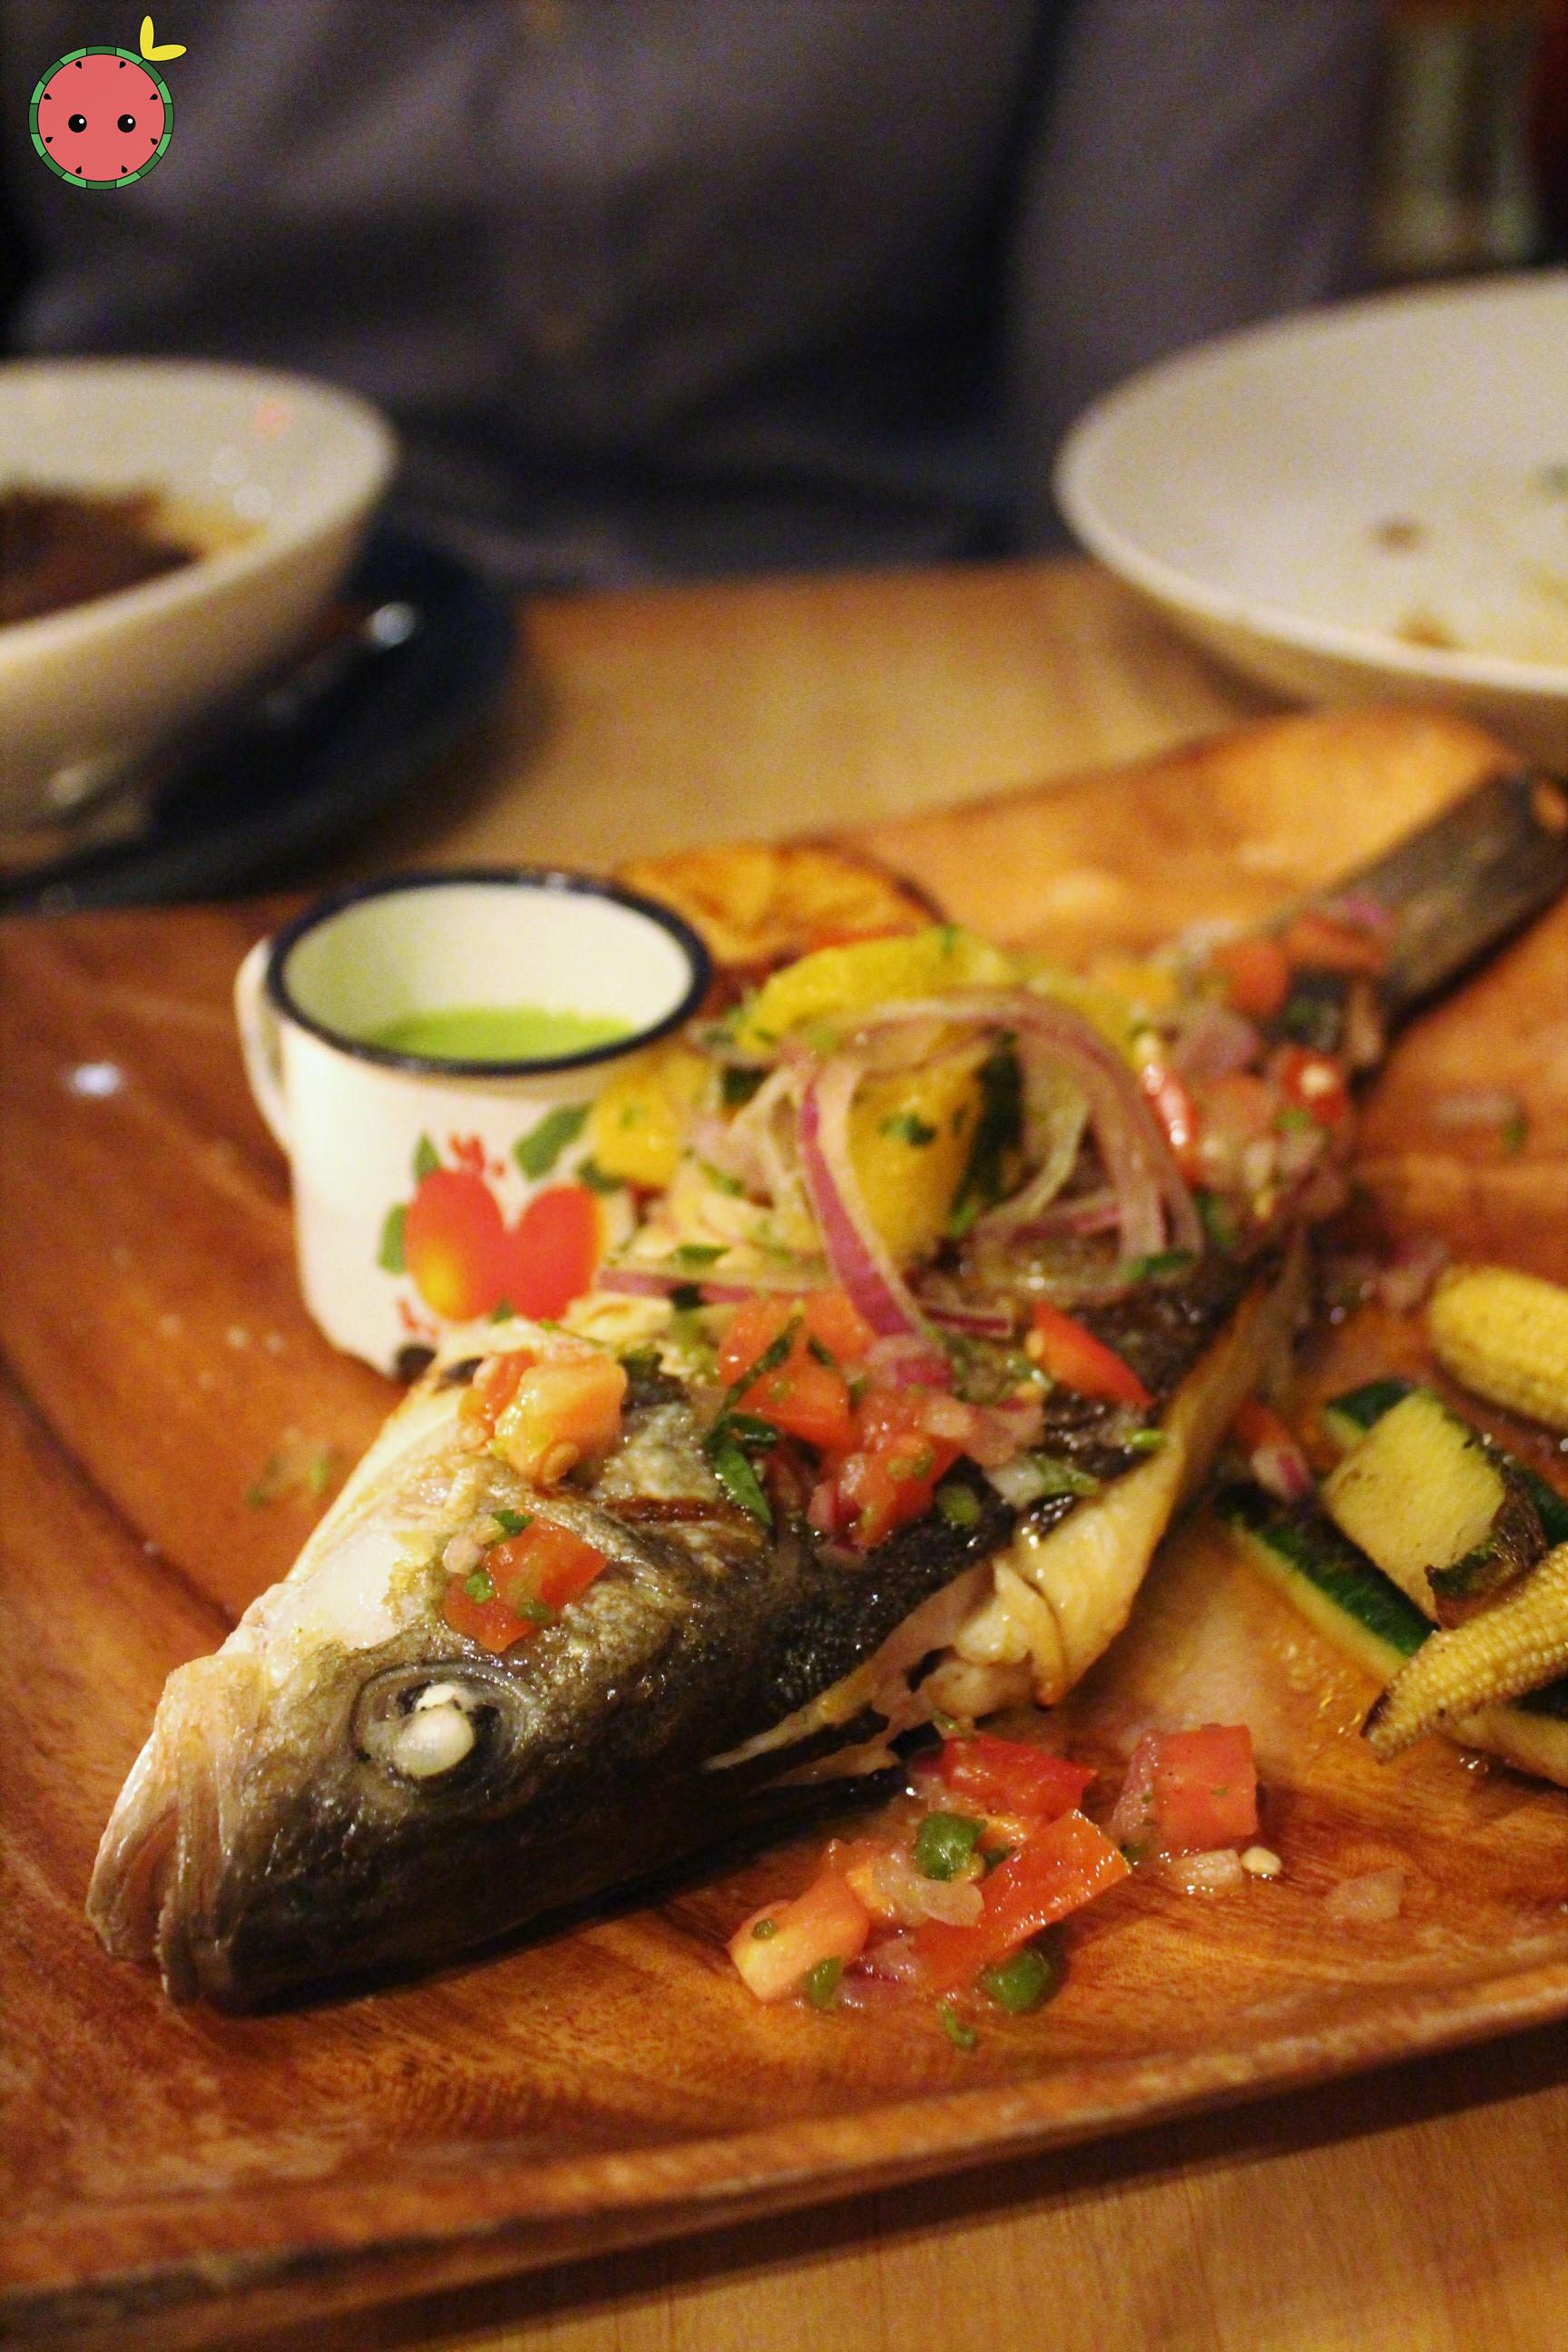 Grilled branzino, grilled root vegetable salad, chimichurri, sumac